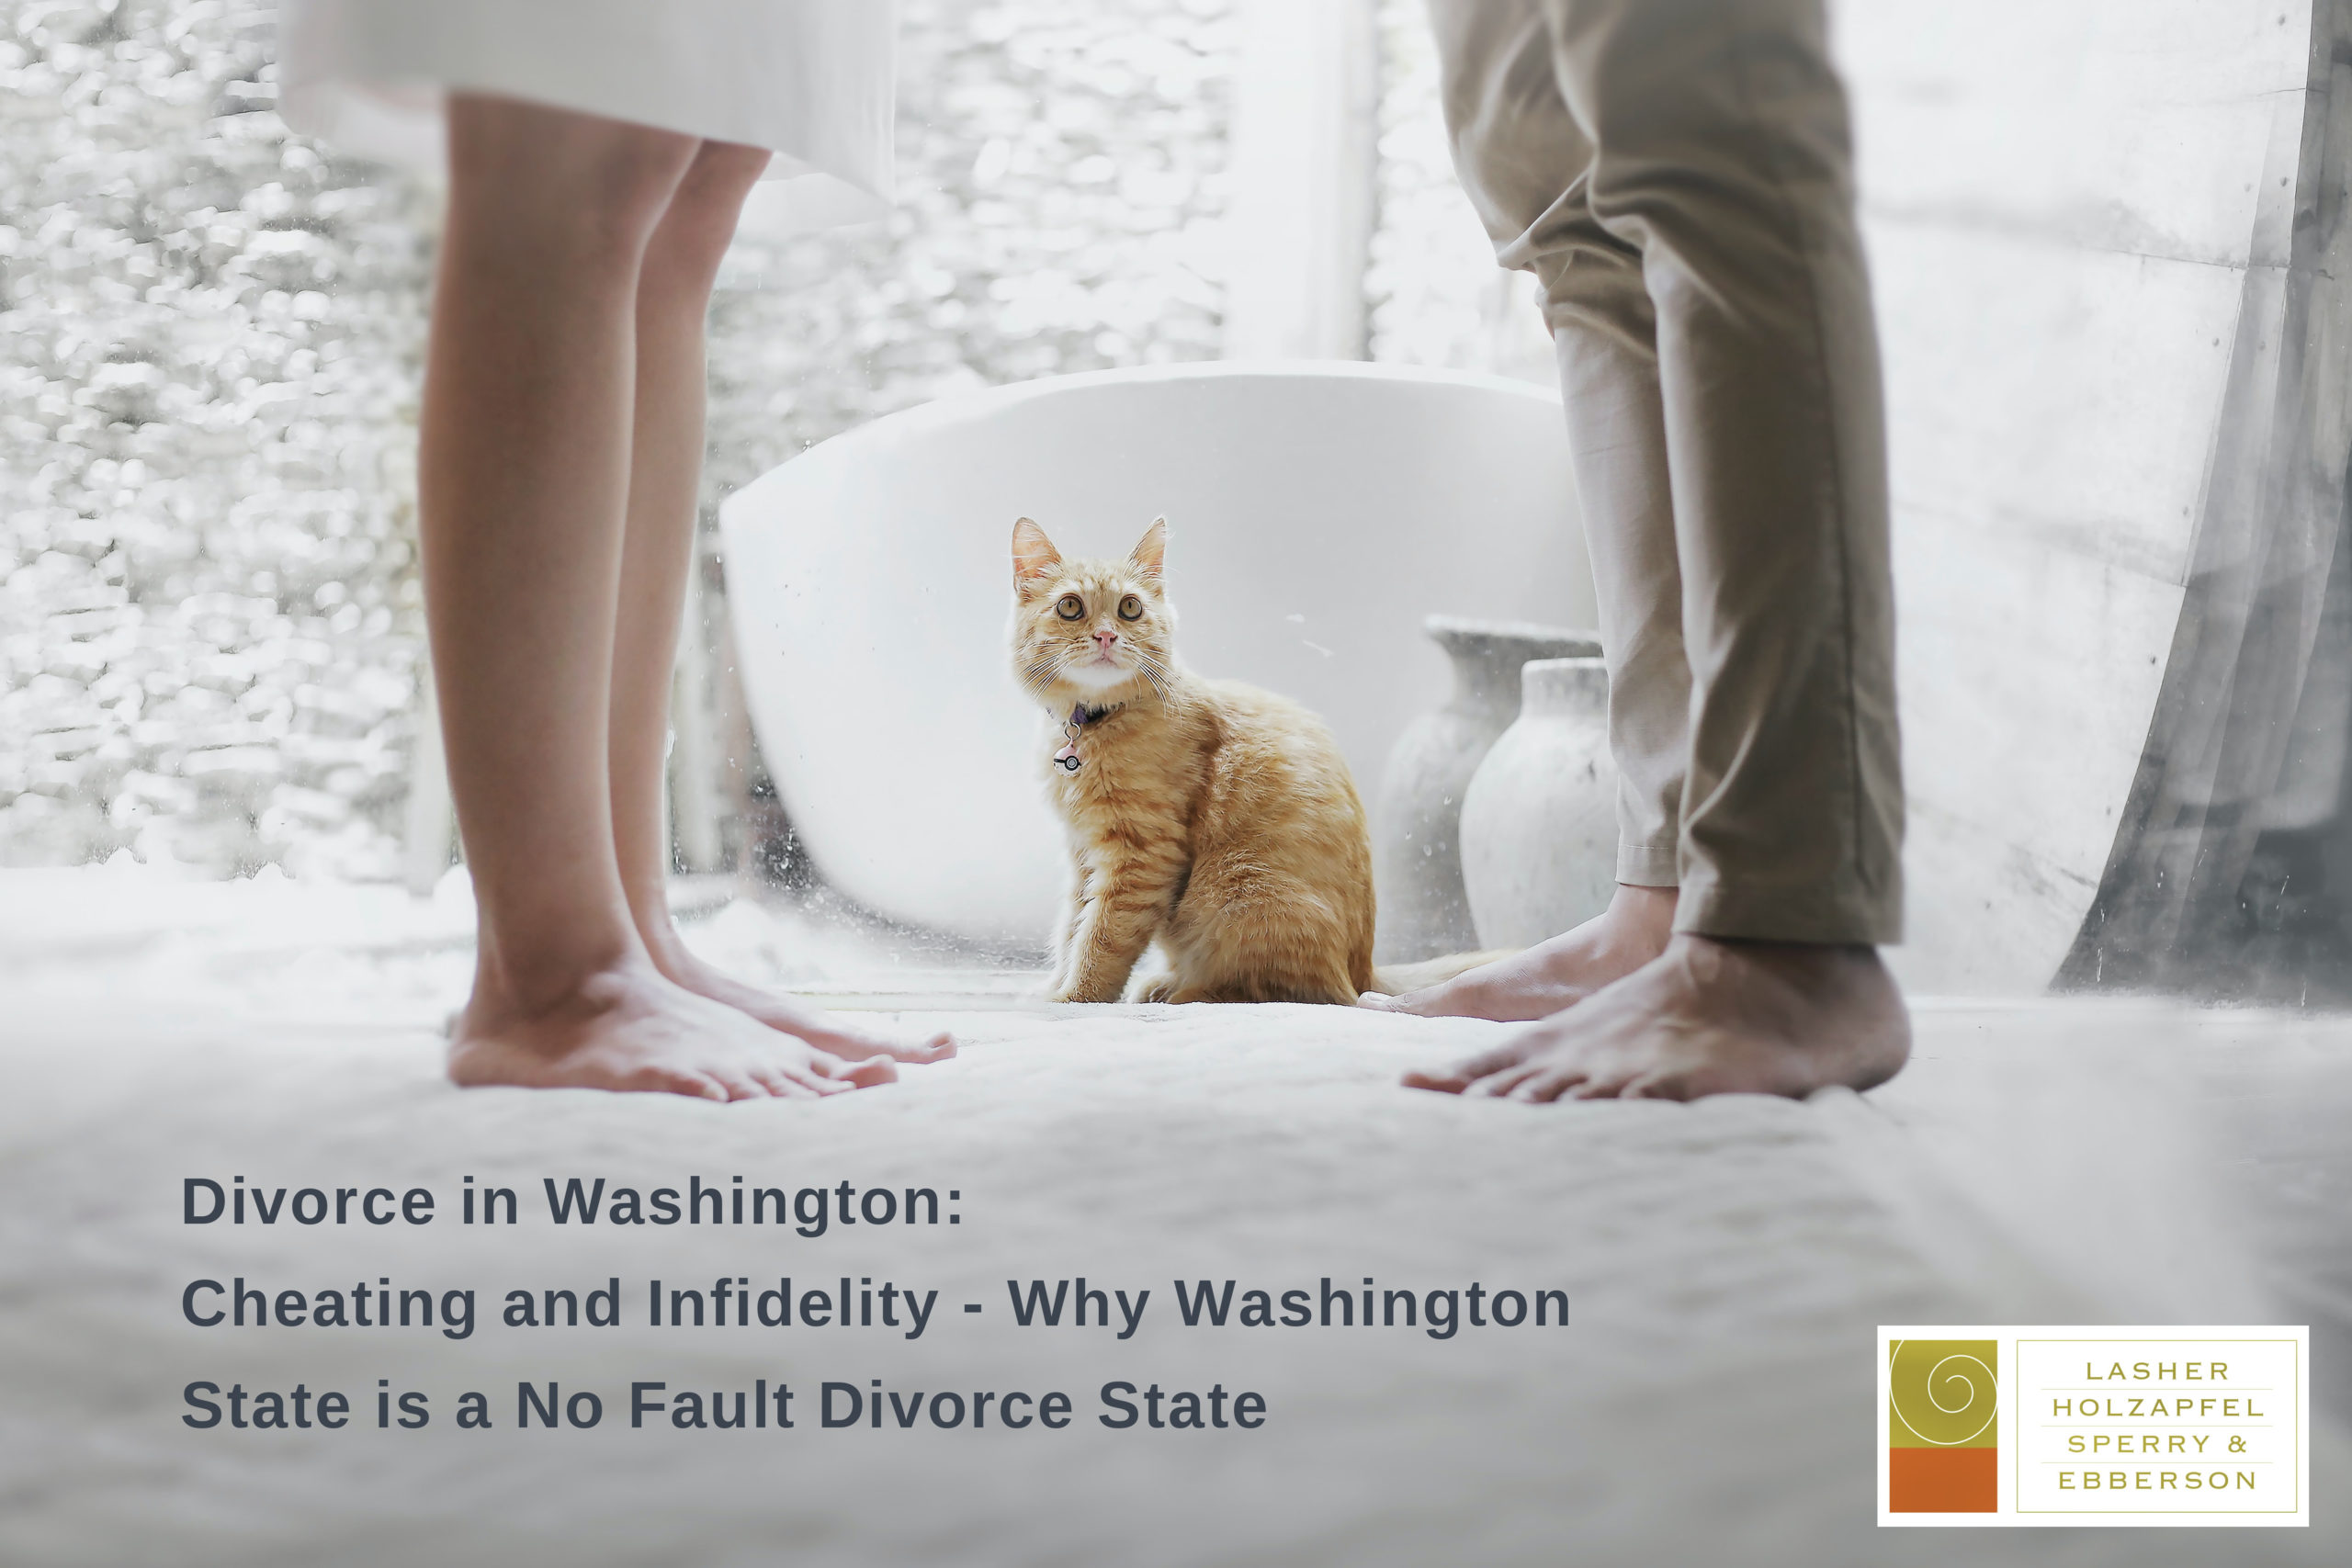 Divorce in Washington – Cheating and Infidelity: Why Washington State is a No Fault Divorce State